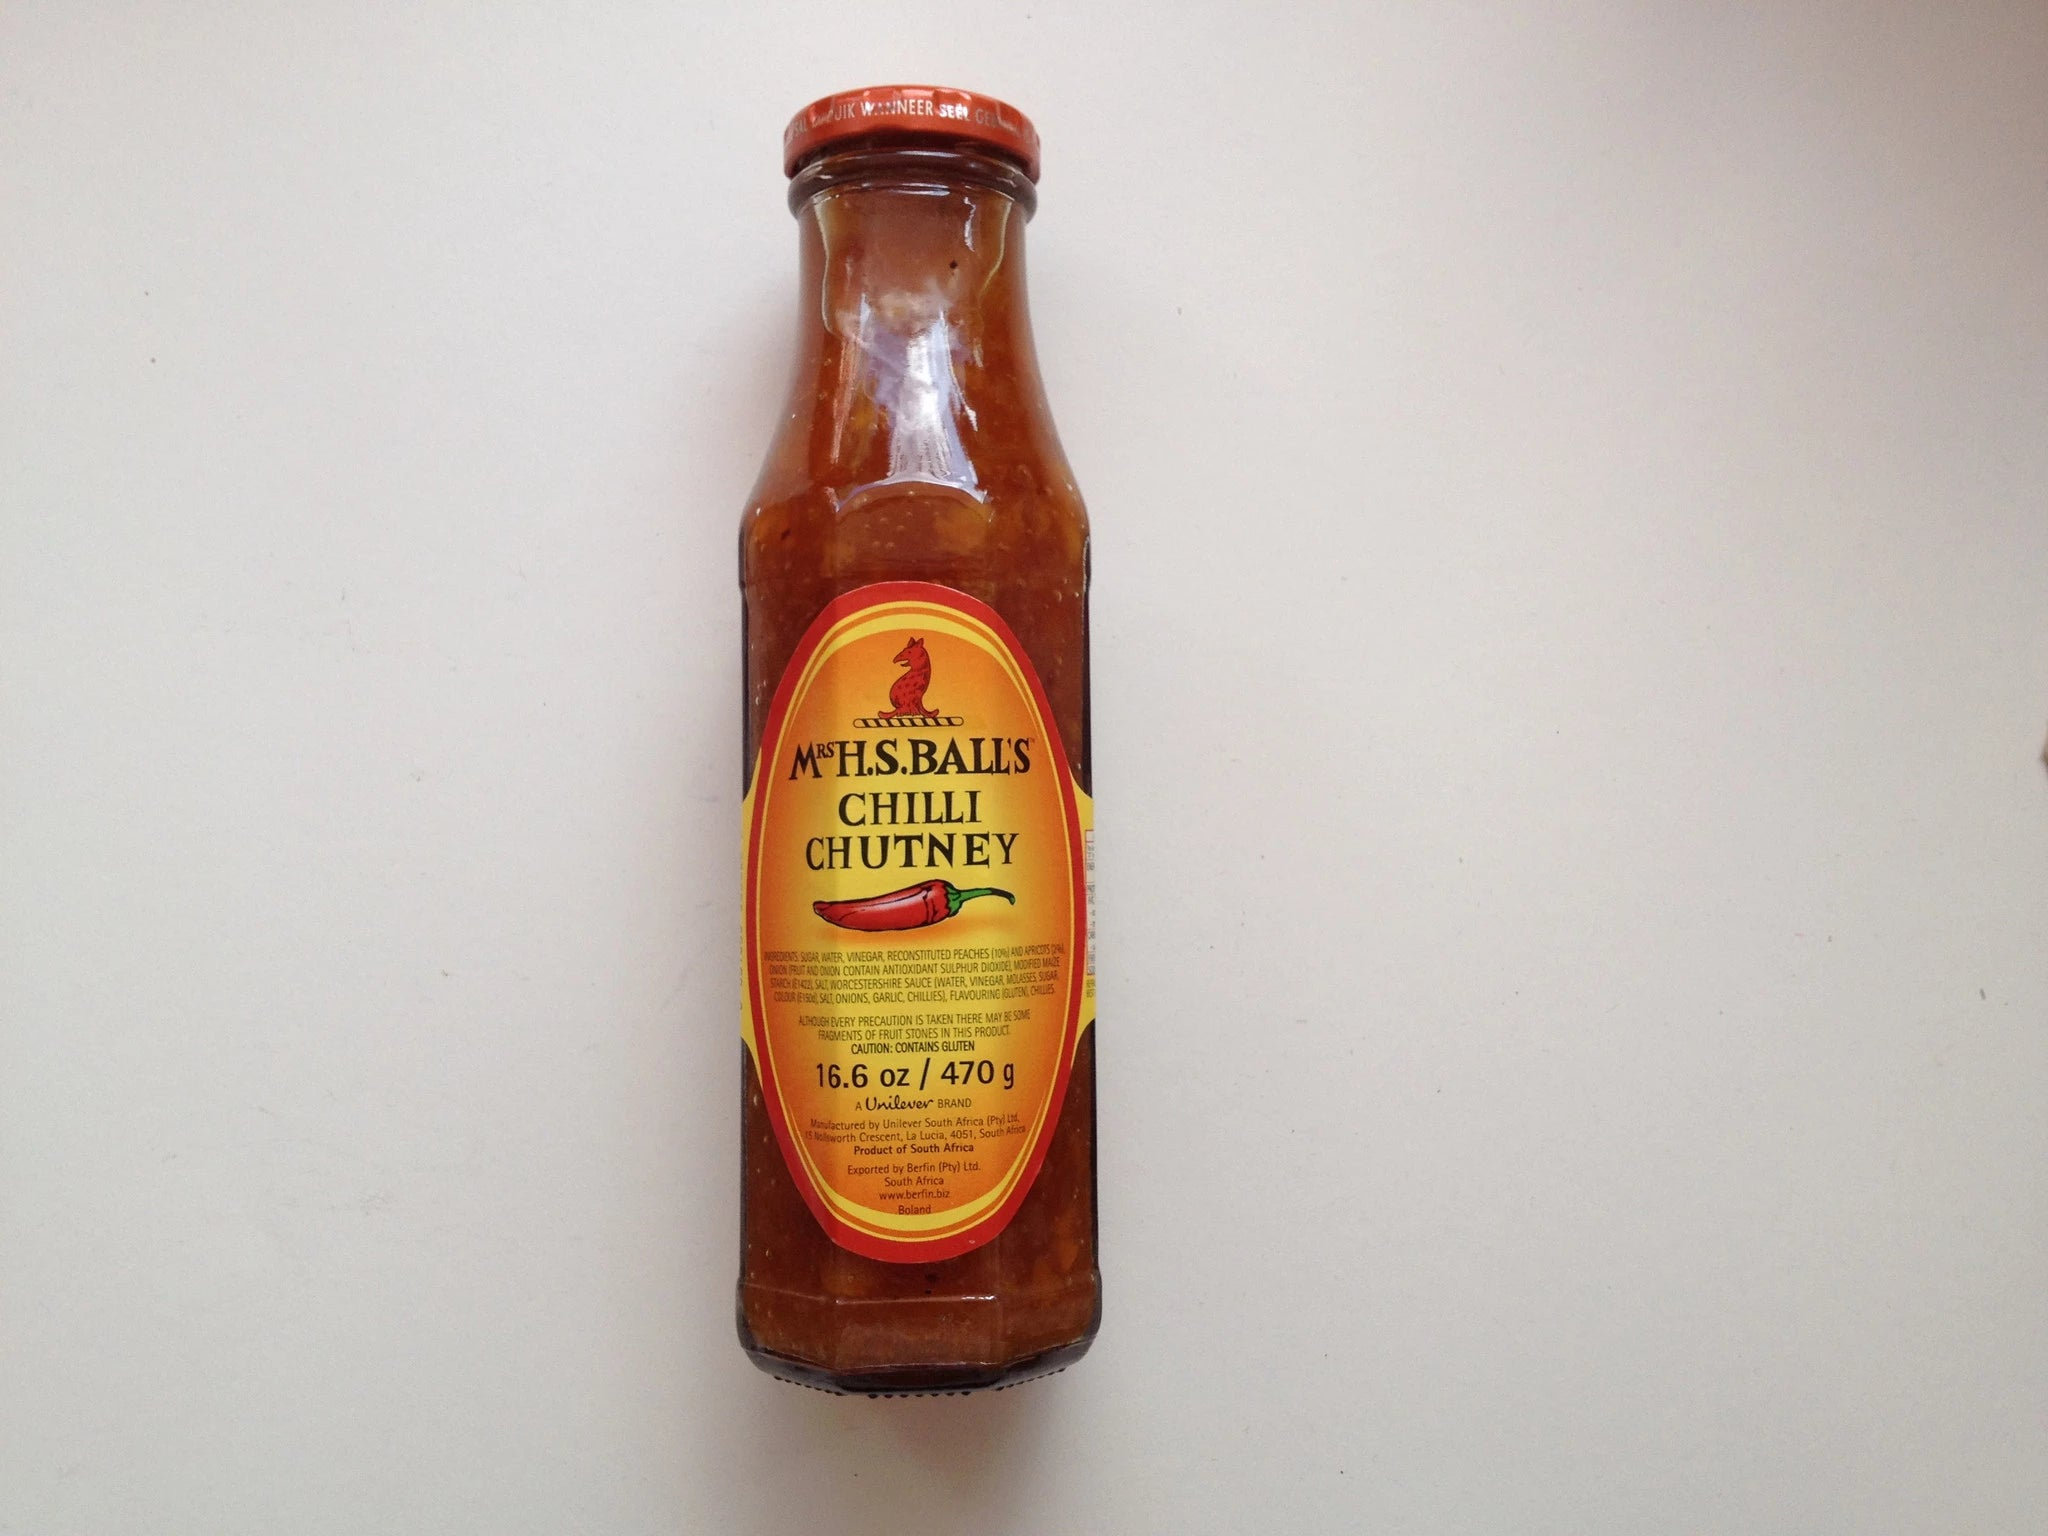 Mrs H.S. Ball's Chilli Chutney